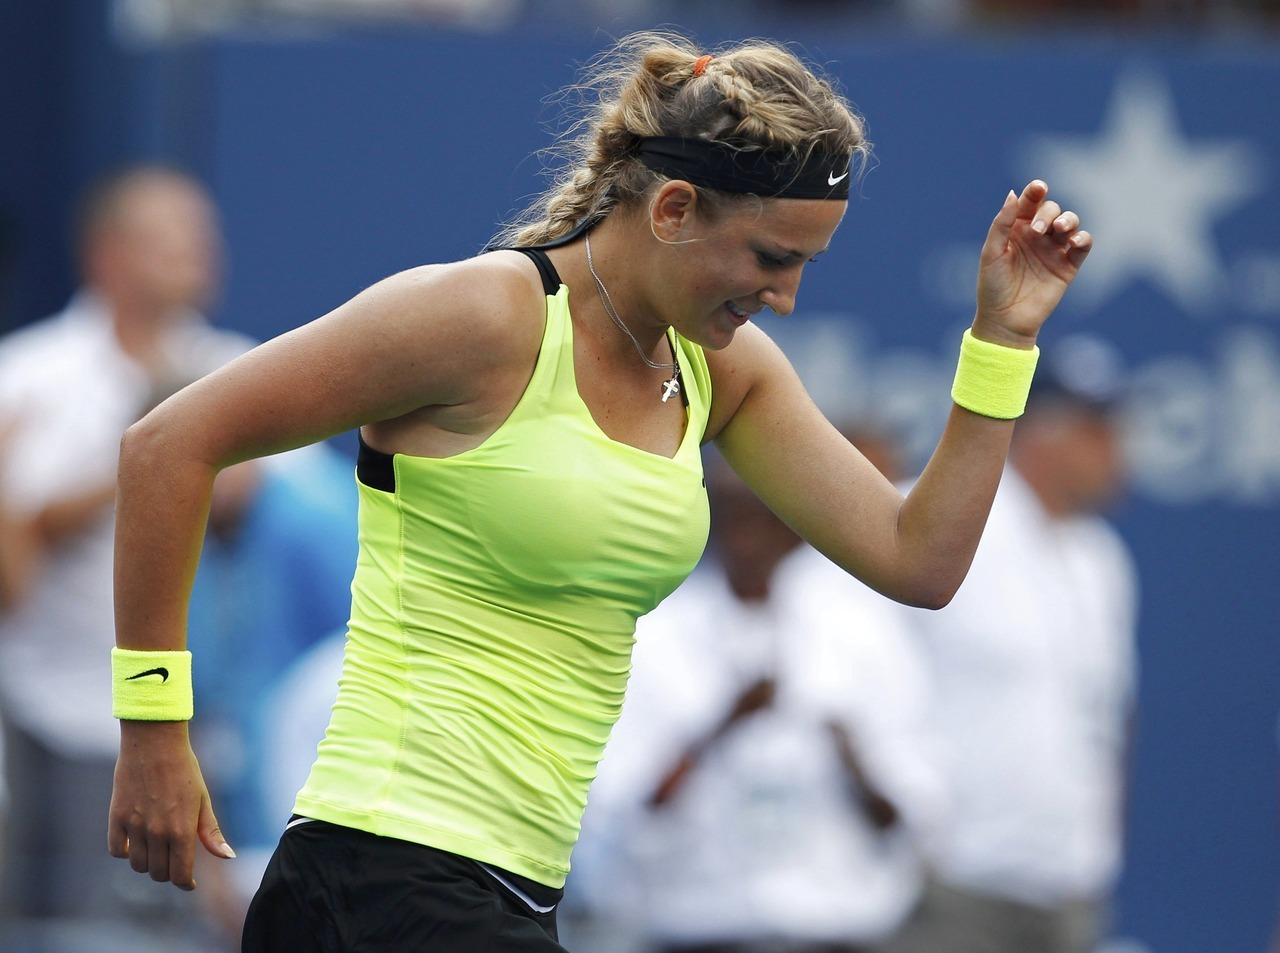 Top-seeded Victoria Azarenka of Belarus dances after beating third-seeded former champion Maria Sharapova of Russia 3-6 6-2 6-4 to reach the U.S. open women's final on Friday.Each player took their turn dominating in the opening two sets before settling into an exciting battle in the third set, which Azarenka claimed with a lone service break in the last game when Sharapova sent a forehand long from deuce.French Open winner Sharapova was pressured throughout the final set, taken to two deuces on her serve in the second game, to five deuces in the fourth and to four deuces in the sixth, but the Russian persevered until succumbing in the last game.